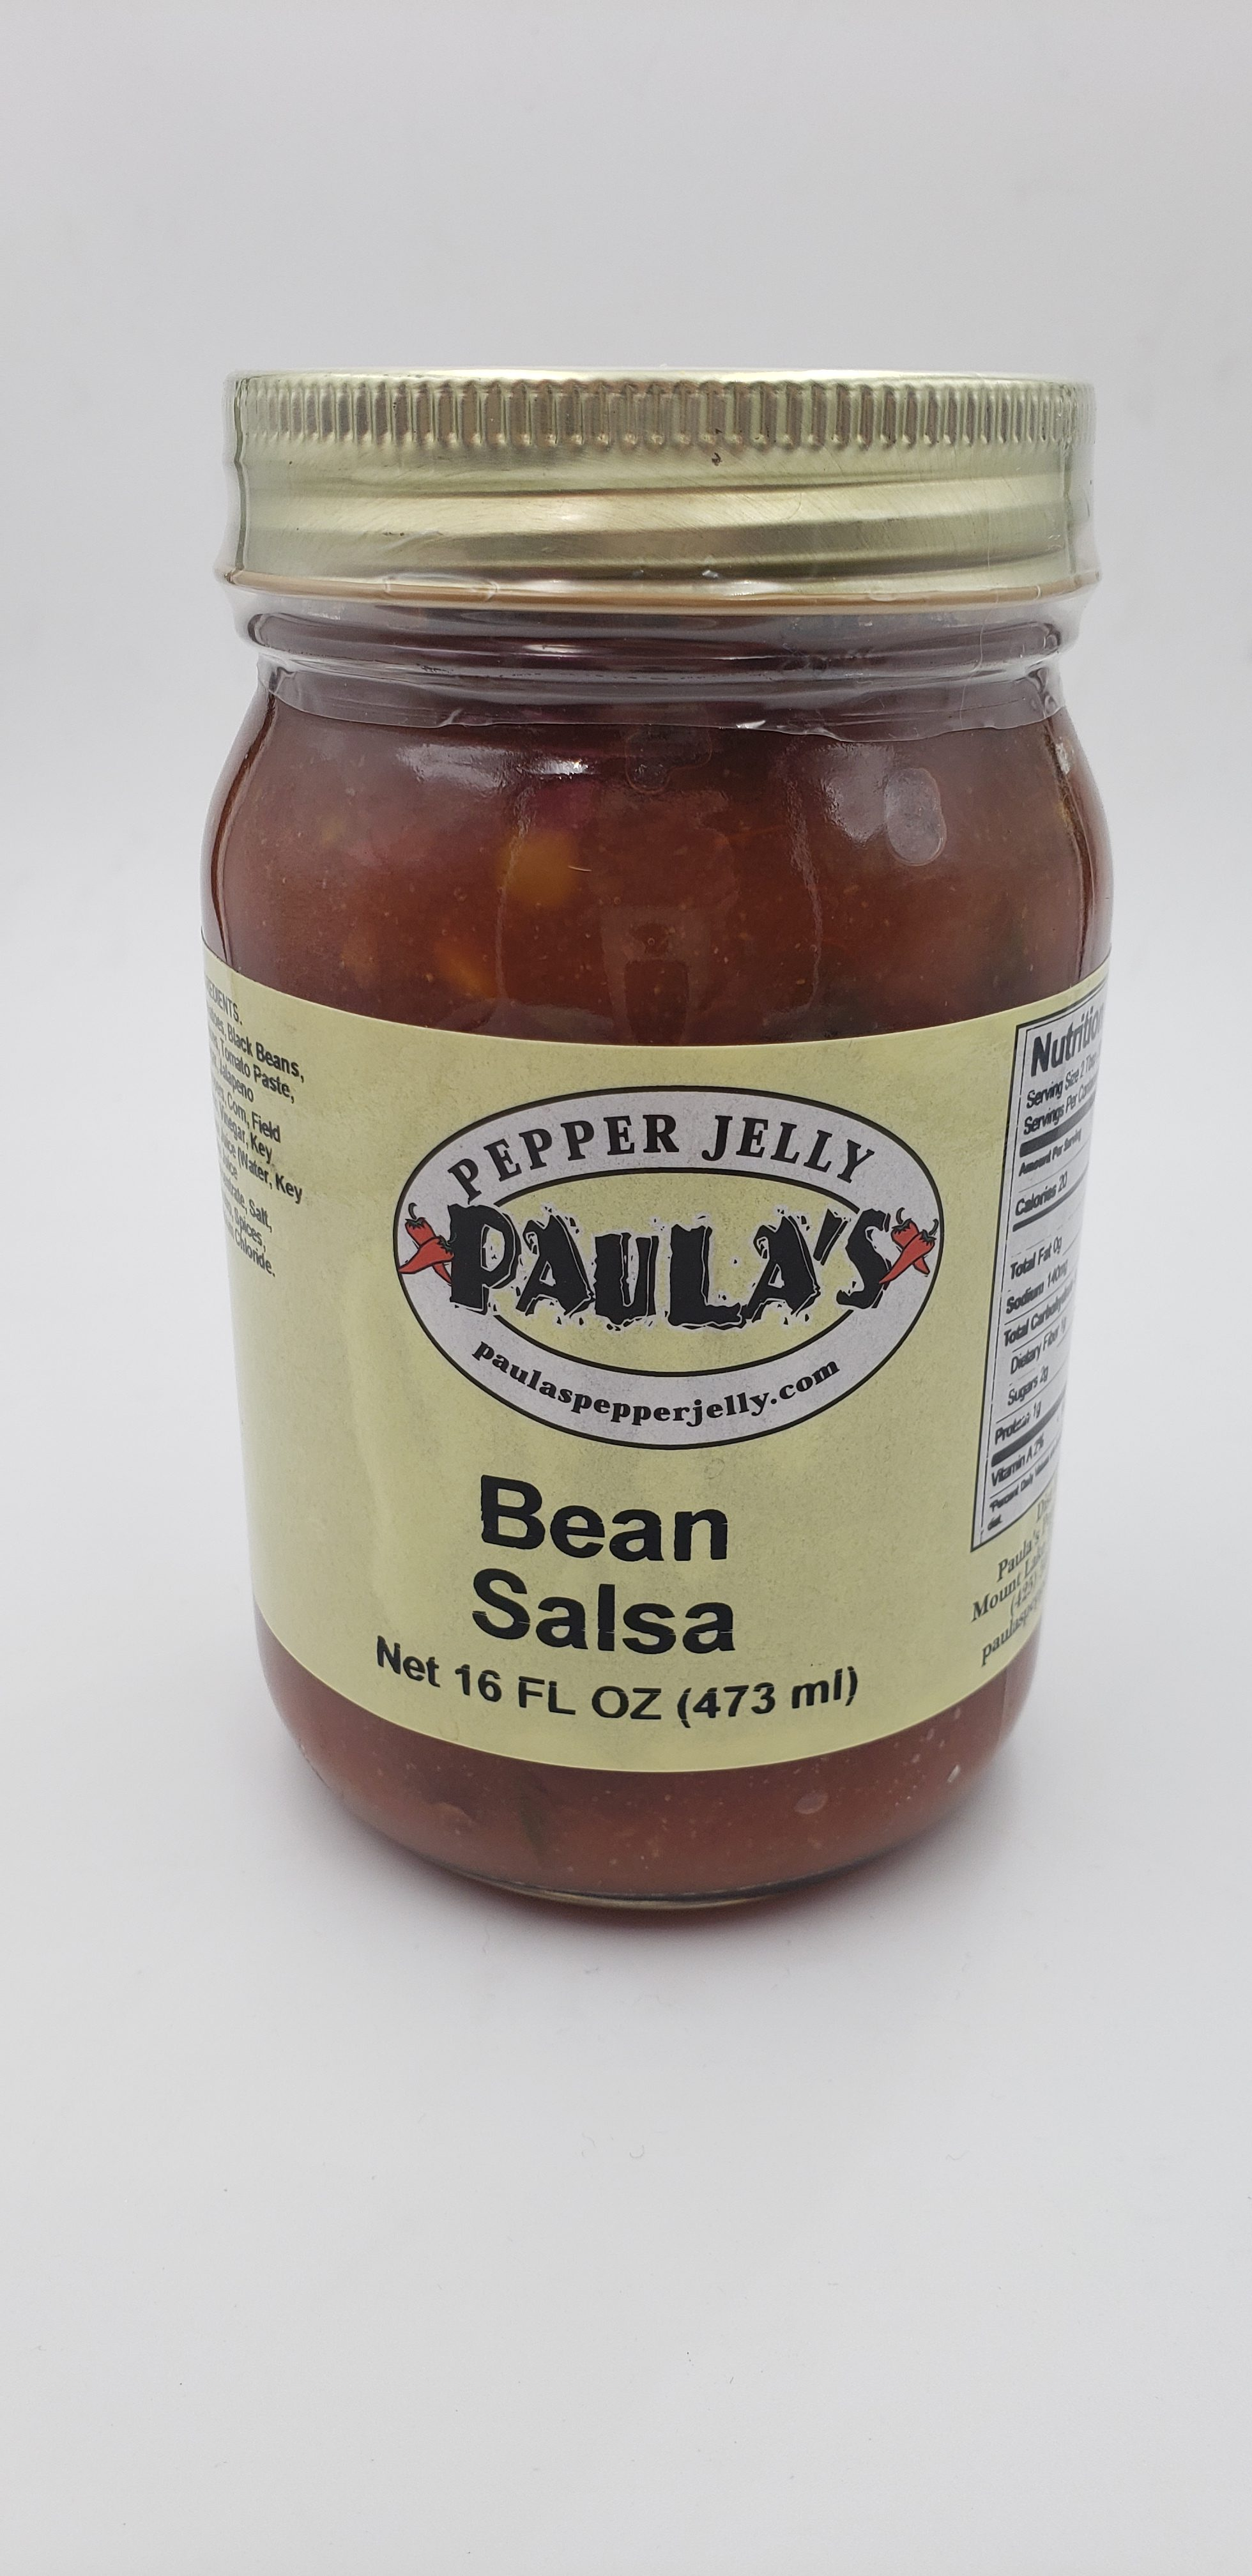 Jar of Paula's Bean Salsa from Paula's Pepper Jelly label out.